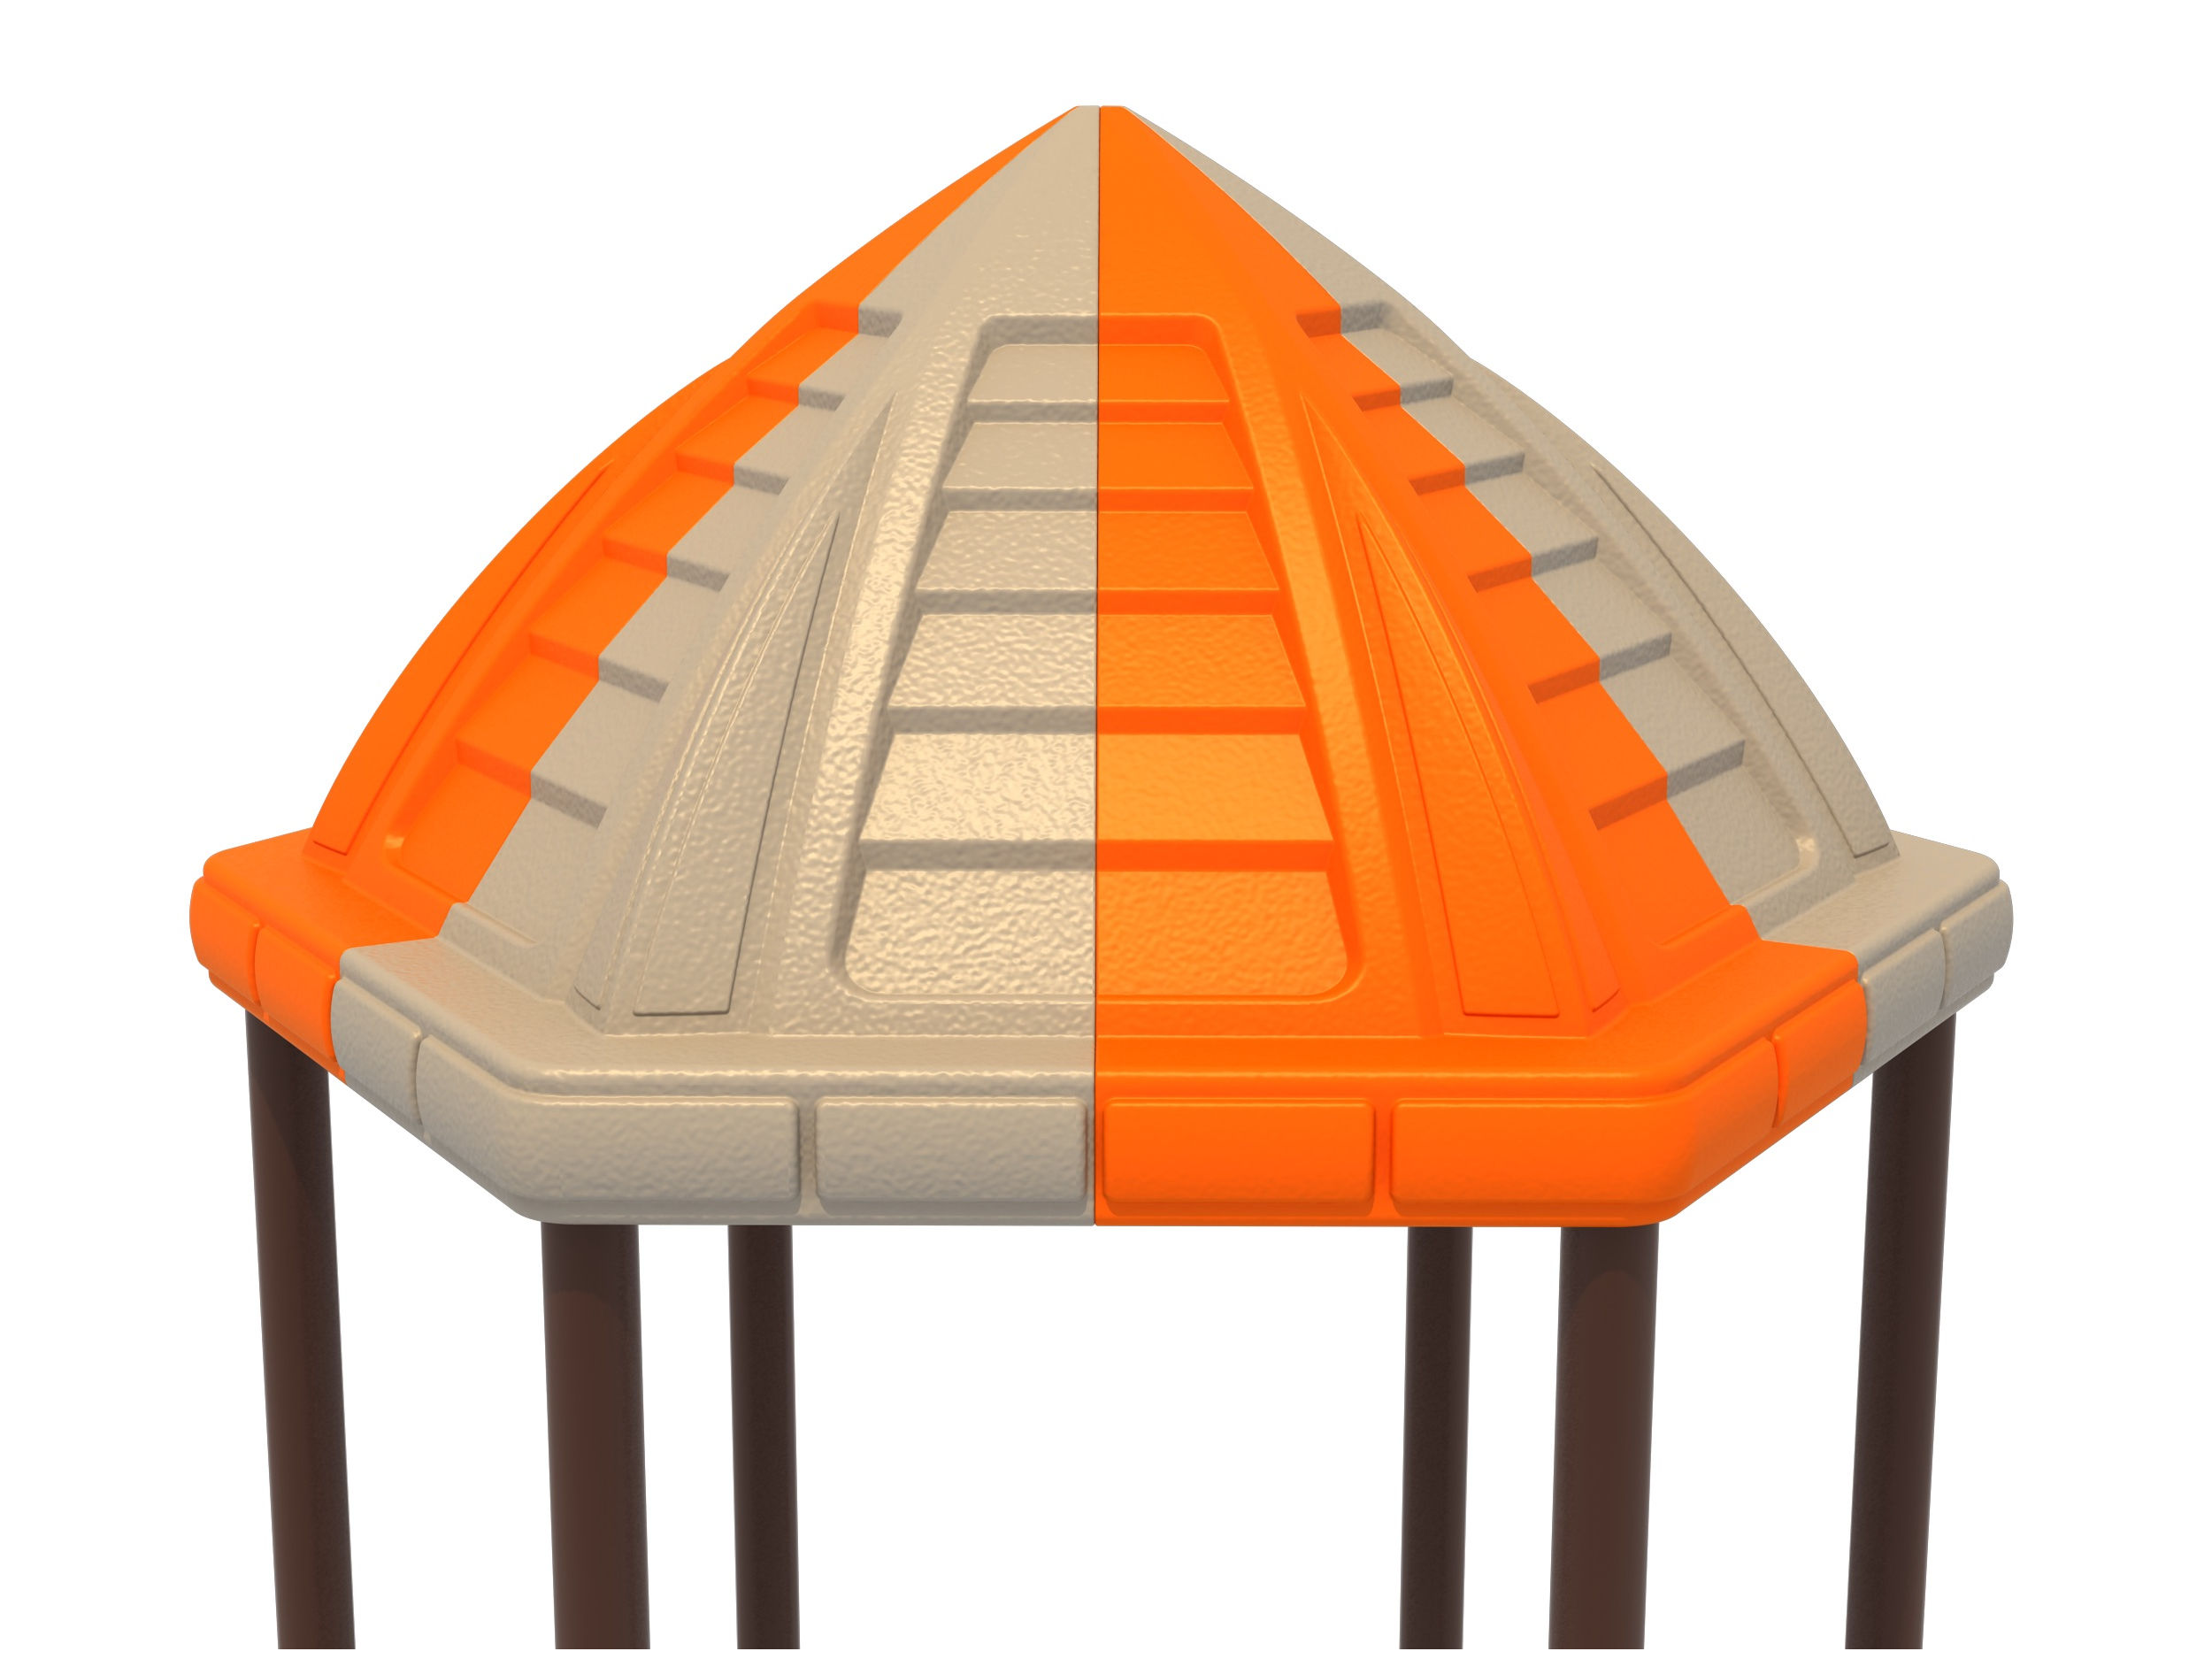 Hex Pyramid Roof